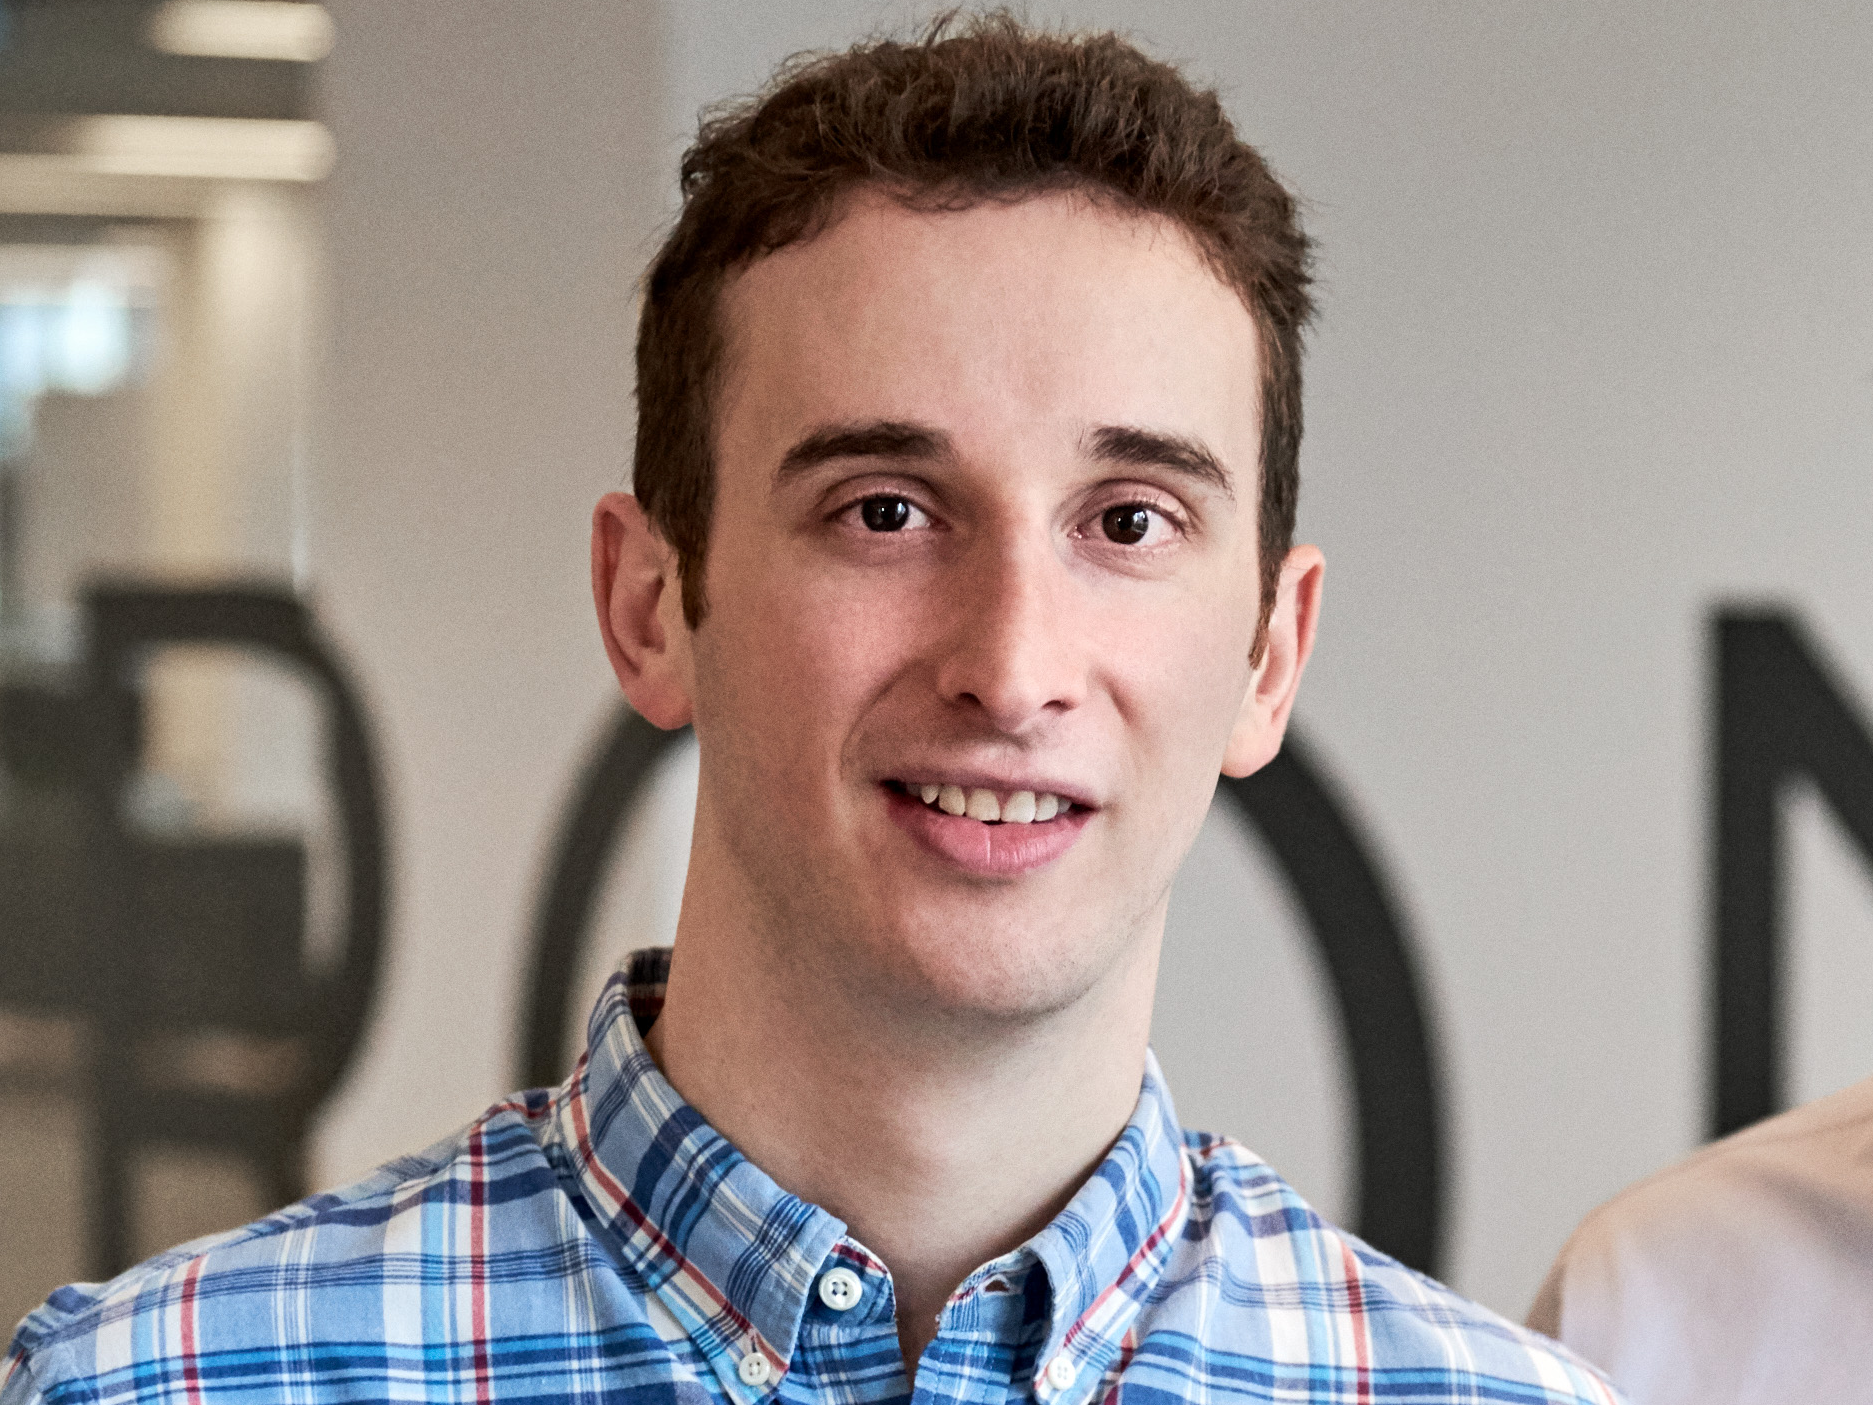 The cofounder of a $2 billion startup says 90% of his job is answering 3 questions